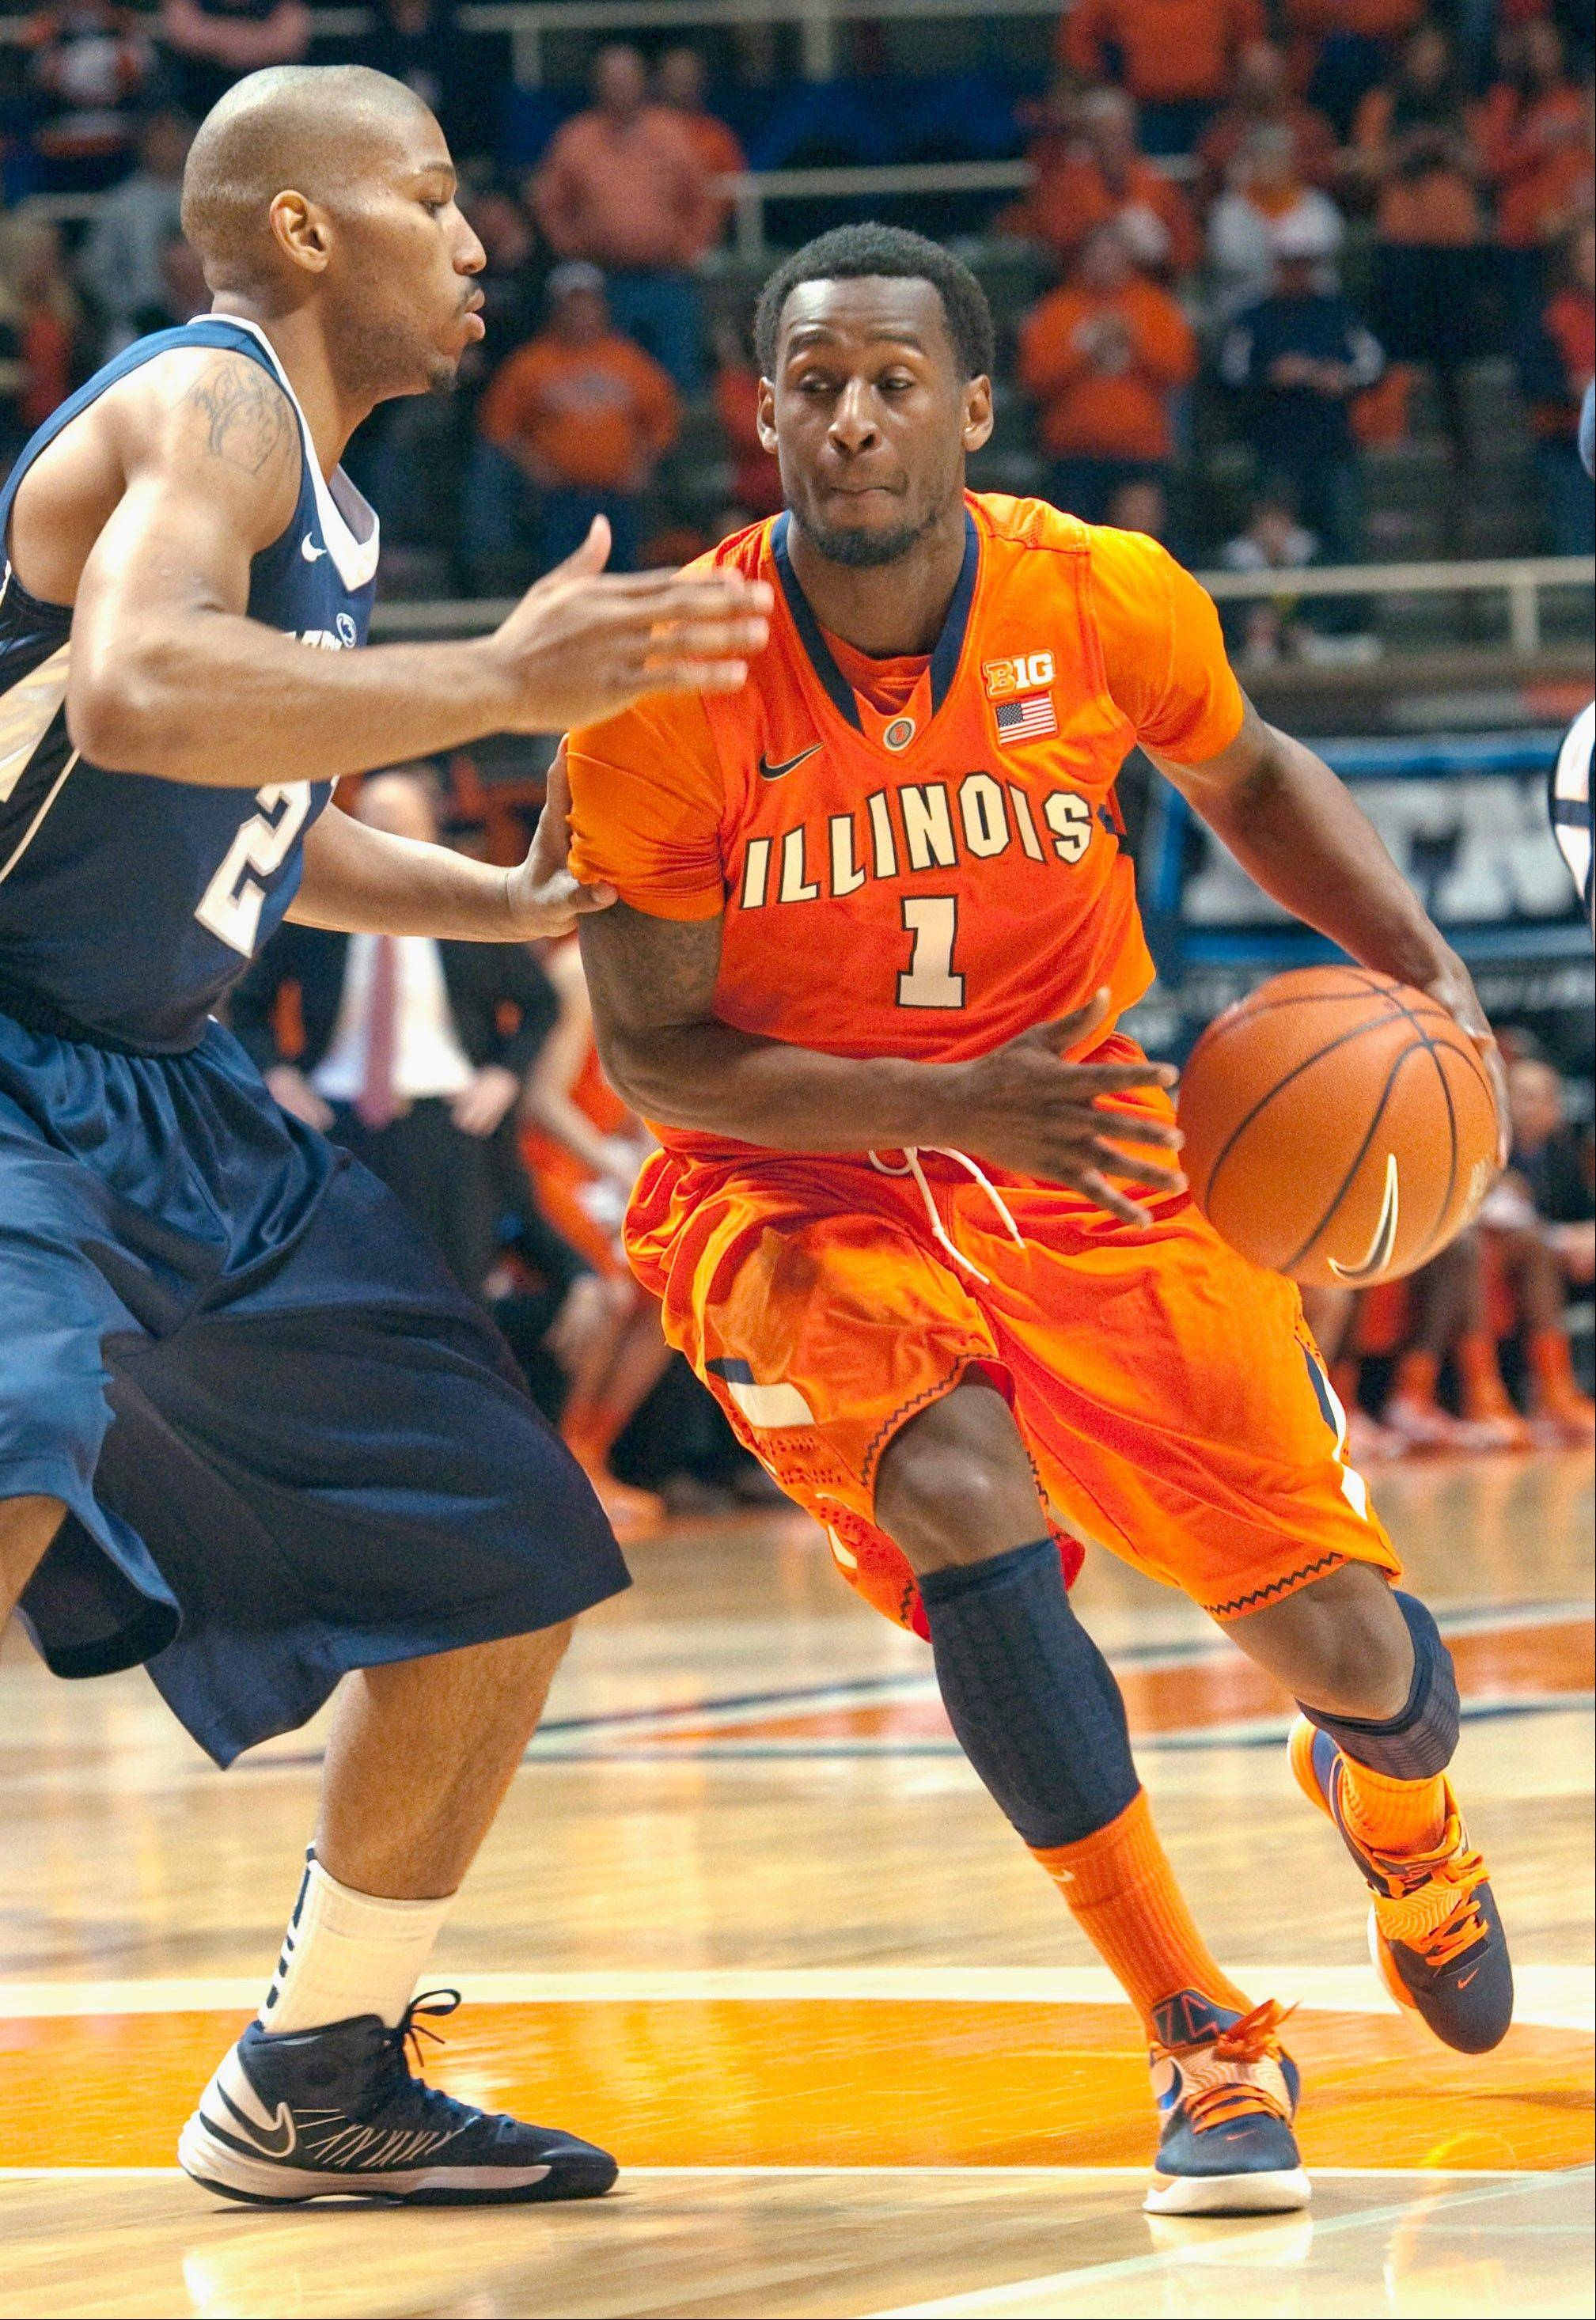 FILE - In this Feb. 21, 2013, file photo, Illinois' D.J. Richardson (1) is guarded by Penn State D.J.Newbill during an NCAA college basketball game in Champaign, Ill. Since day one, Richardson's strengths have been hustle and defense and, while he's never become the big offensive force some thought he might be after his freshman season when he was named the Big Ten's Freshman of the Year, he's still Illinois' stopper. (AP Photo/Robert K. O'Daniell, File)